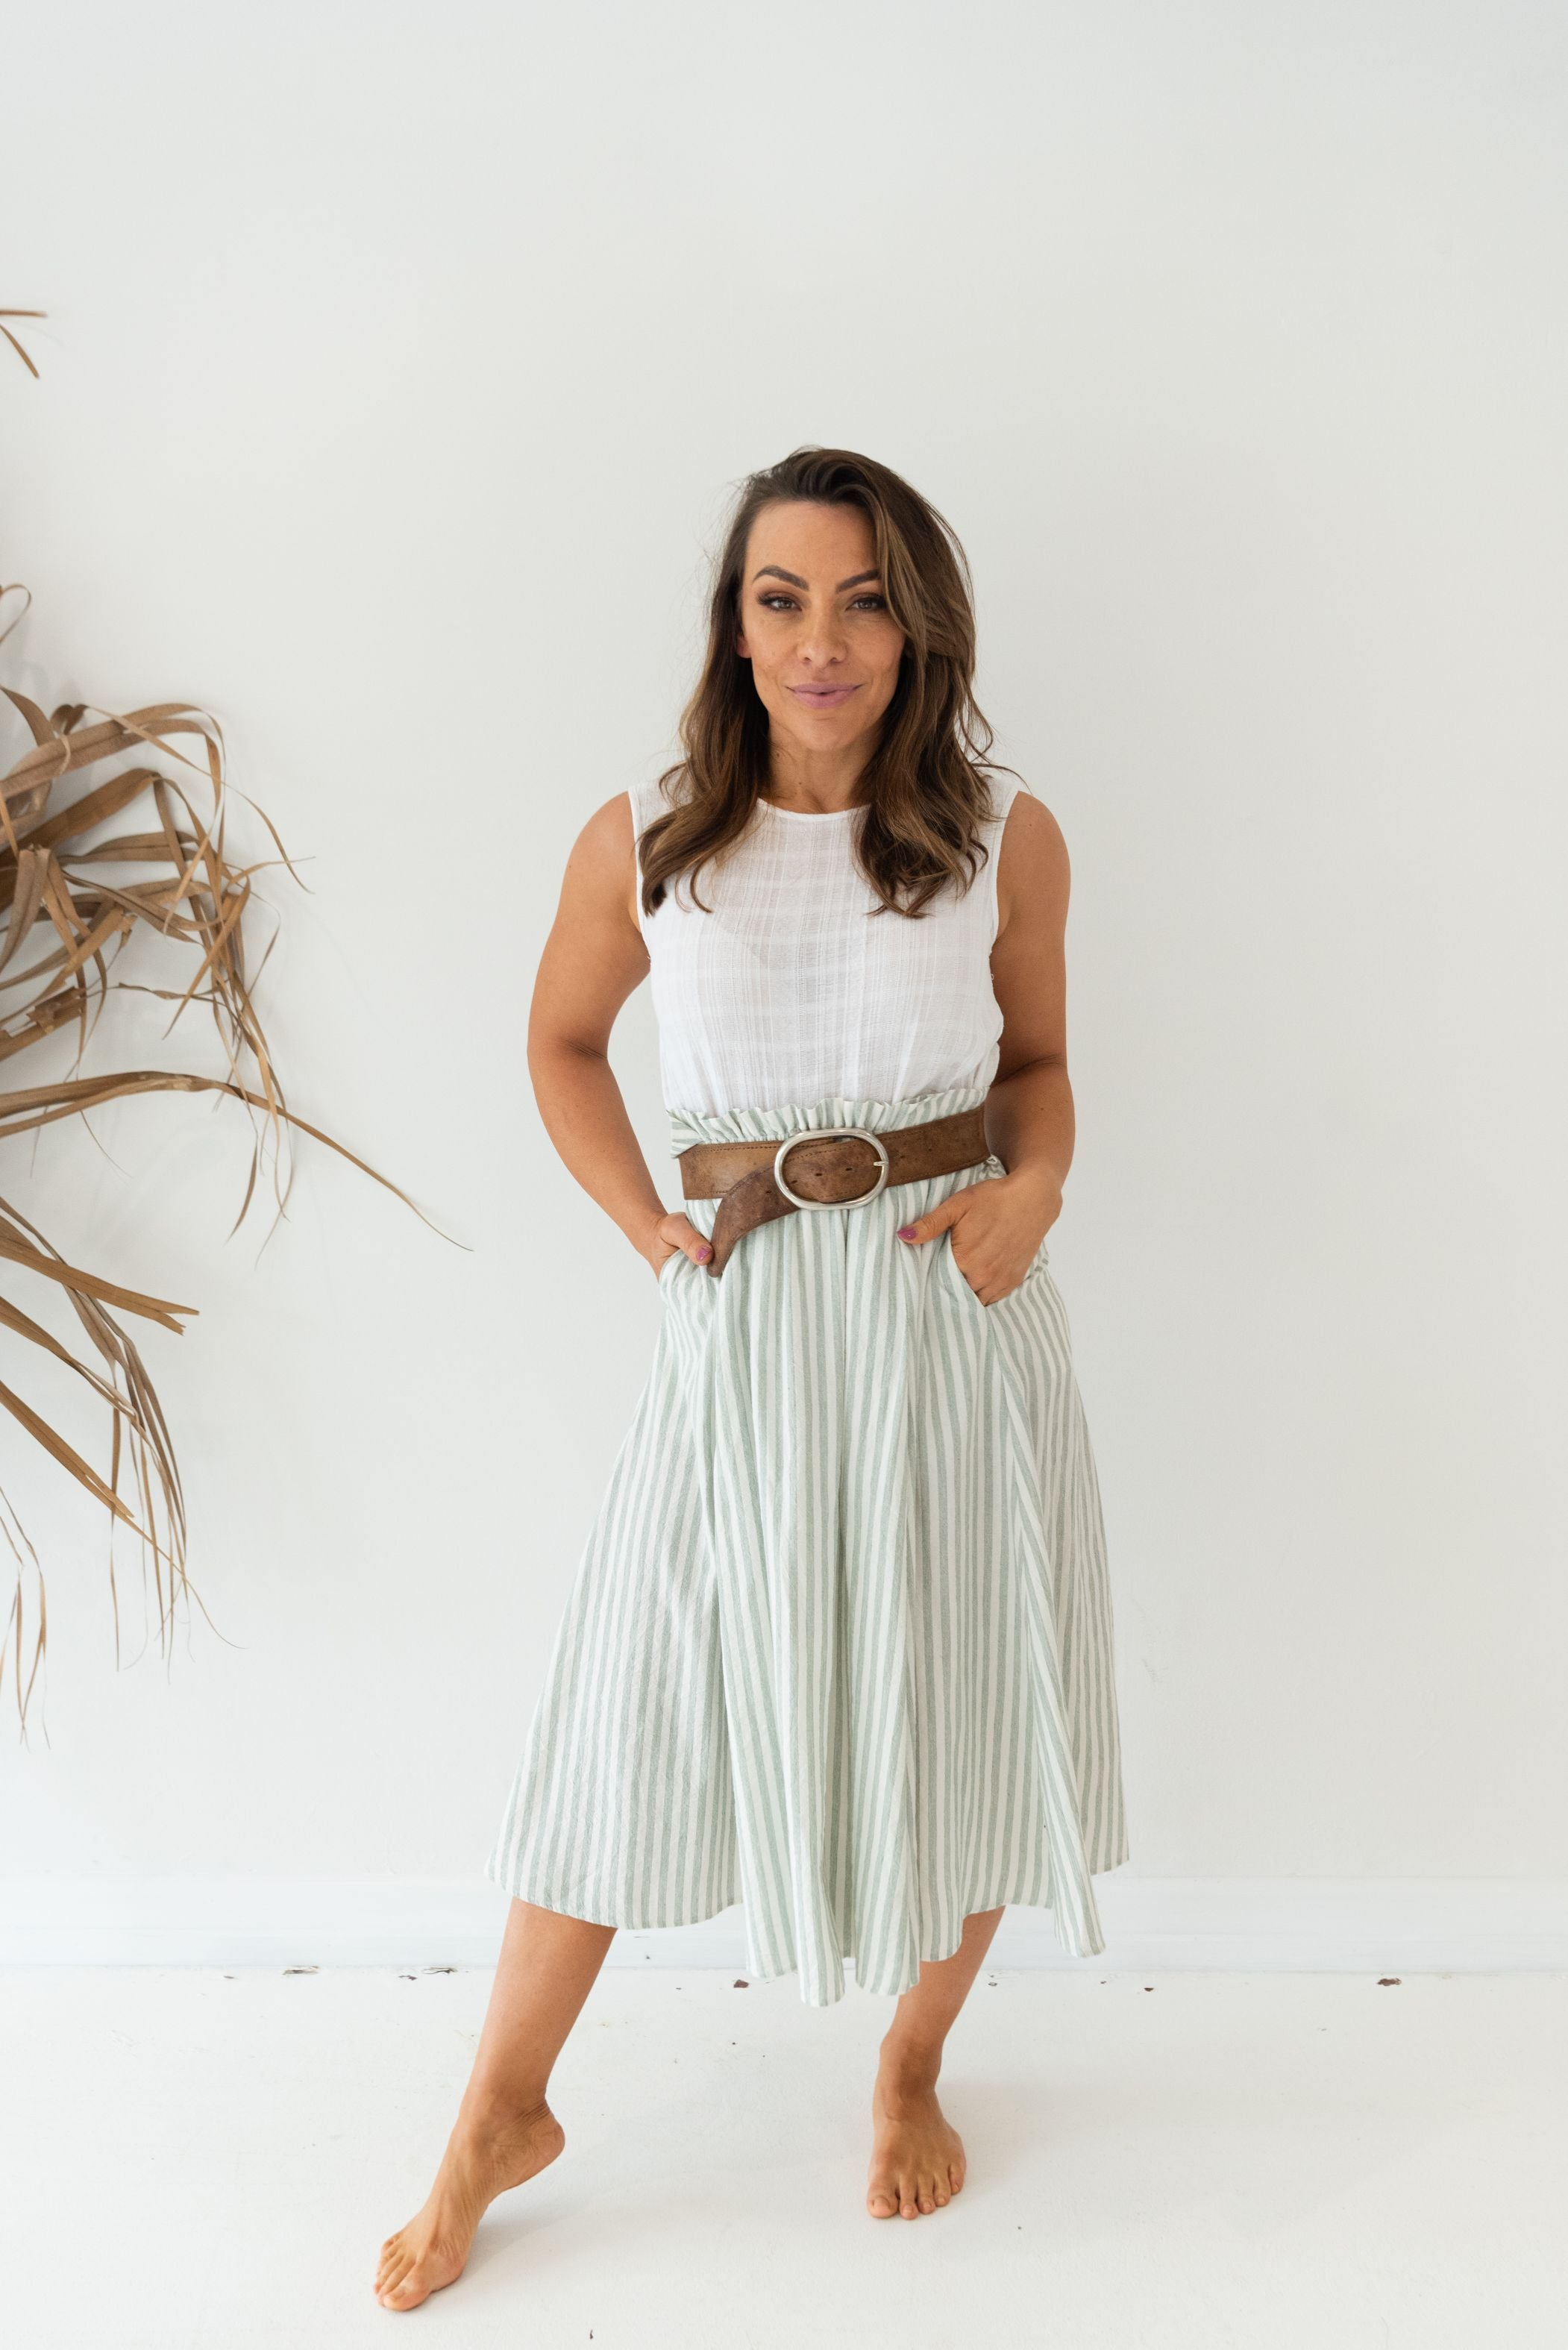 BIM SKIRT - Mint Stripe